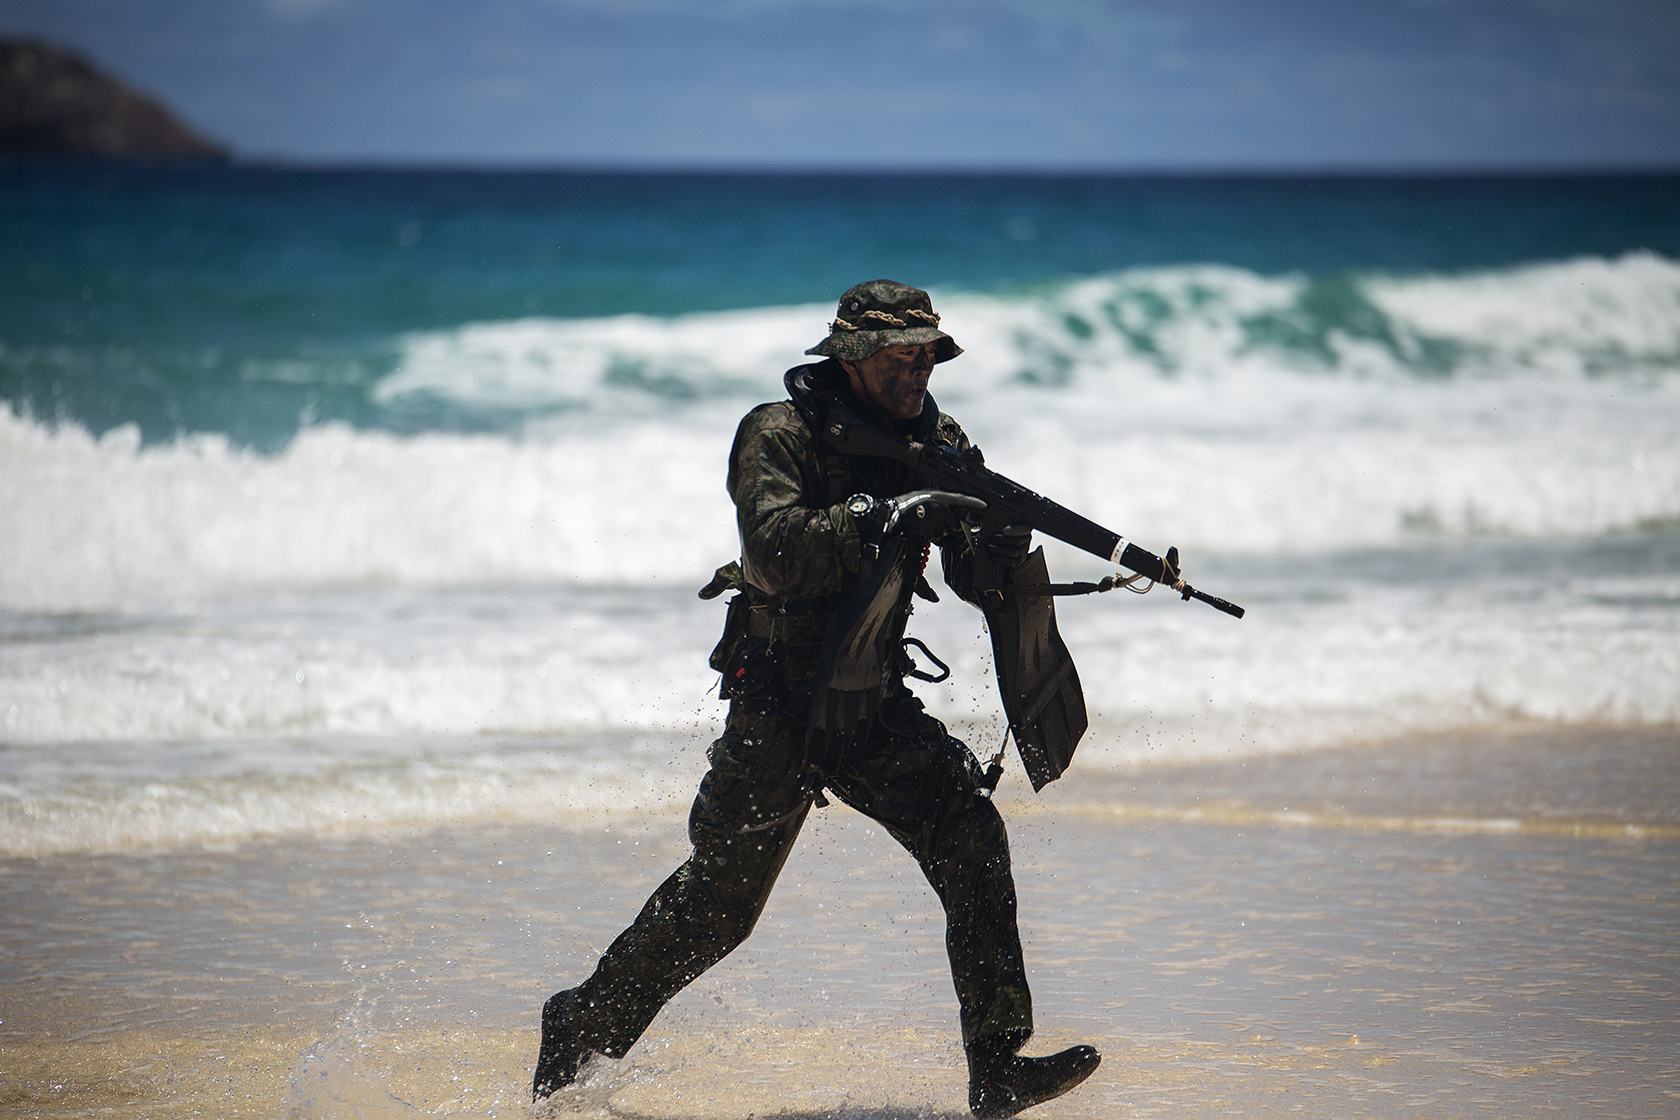 A soldier with the Japan Ground Self-Defense Force (JGSDF) during the Rim of the Pacific 2014 Exercise. US Navy Photo